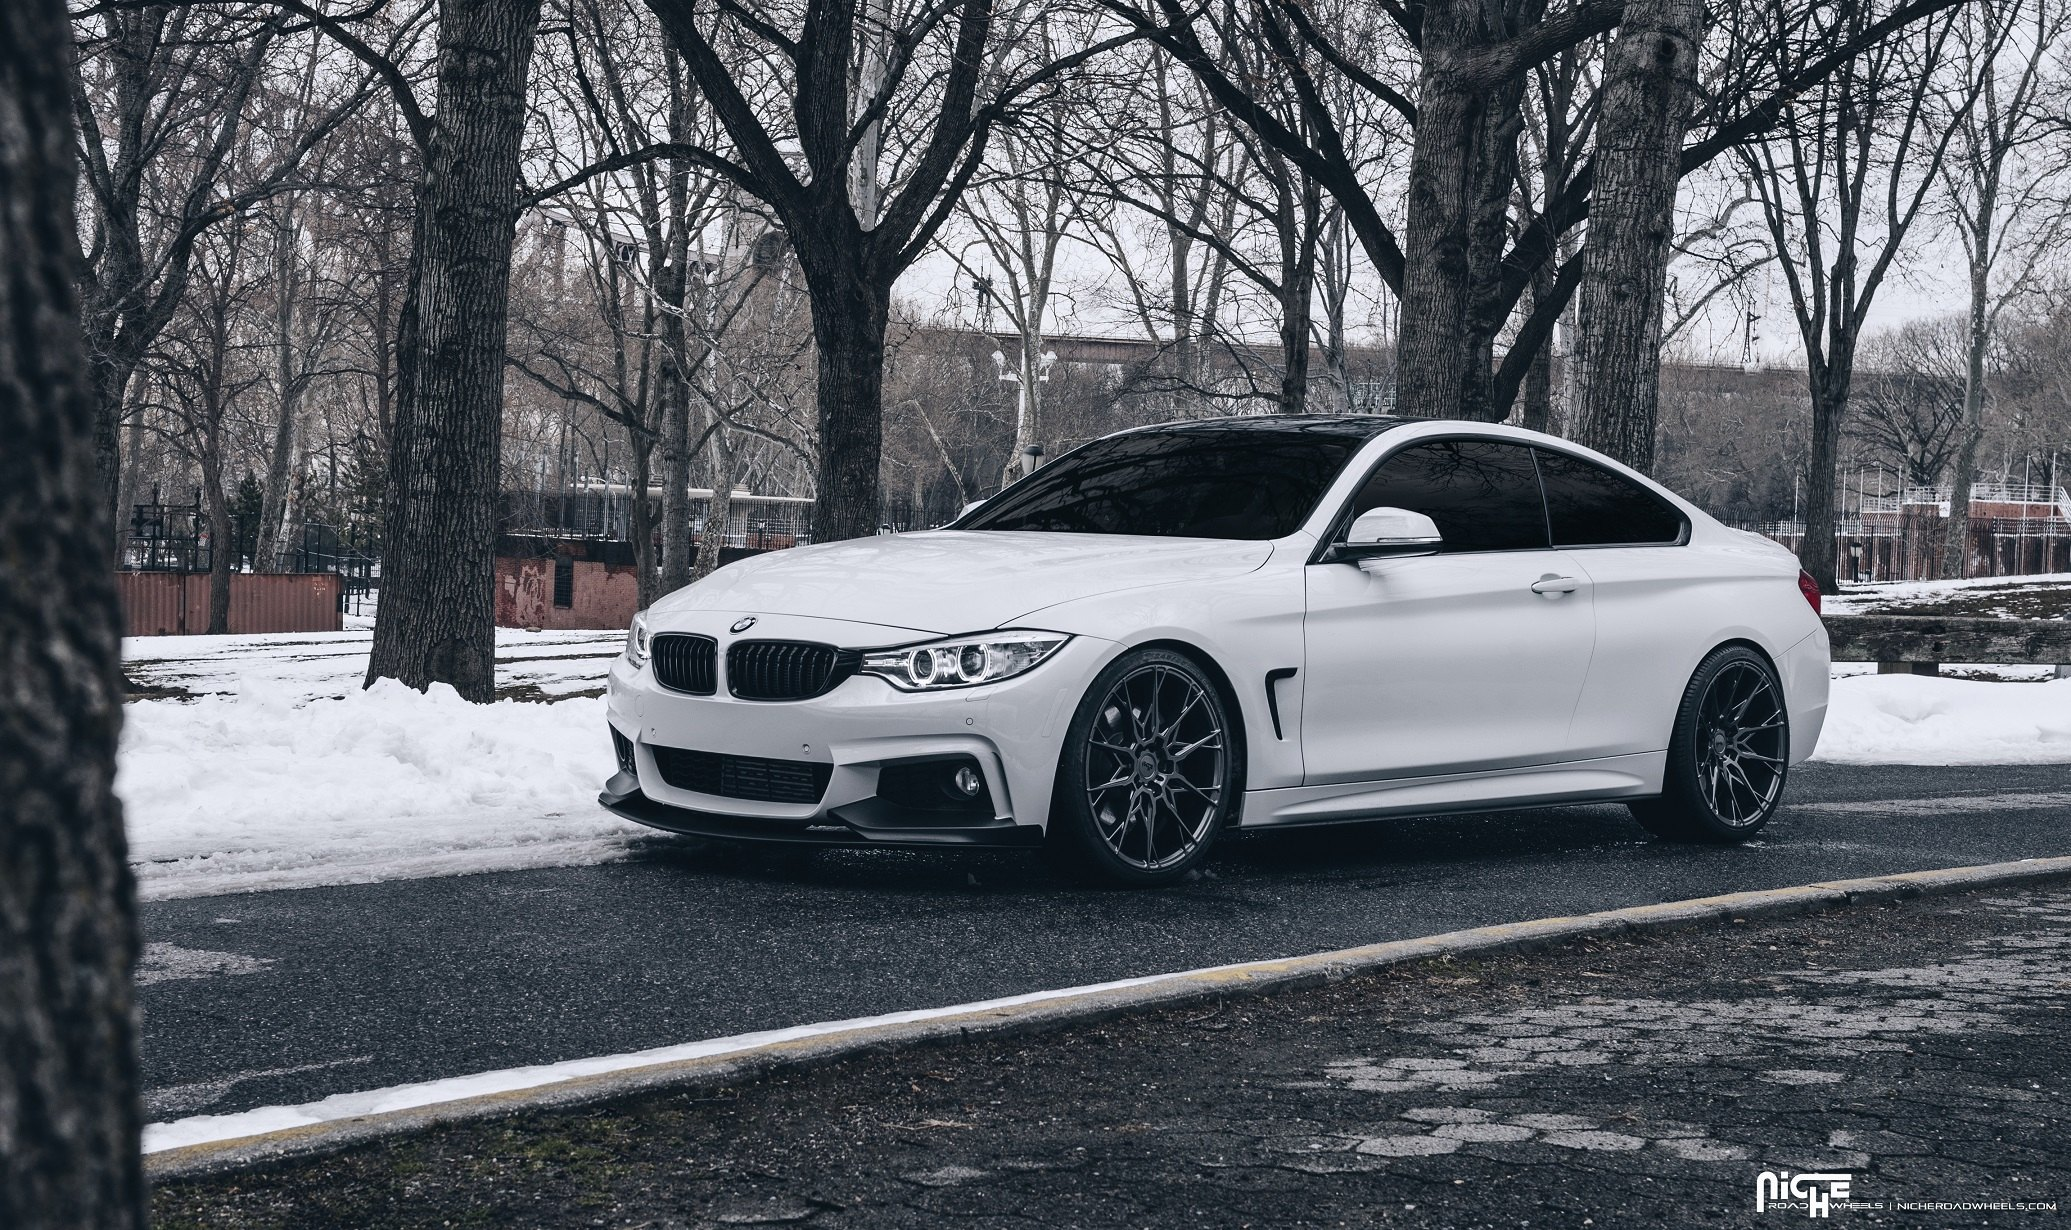 Bmw Rims Style >> Freezing White BMW M4 Coupe Fitted With Niche Custom Wheels — CARiD.com Gallery